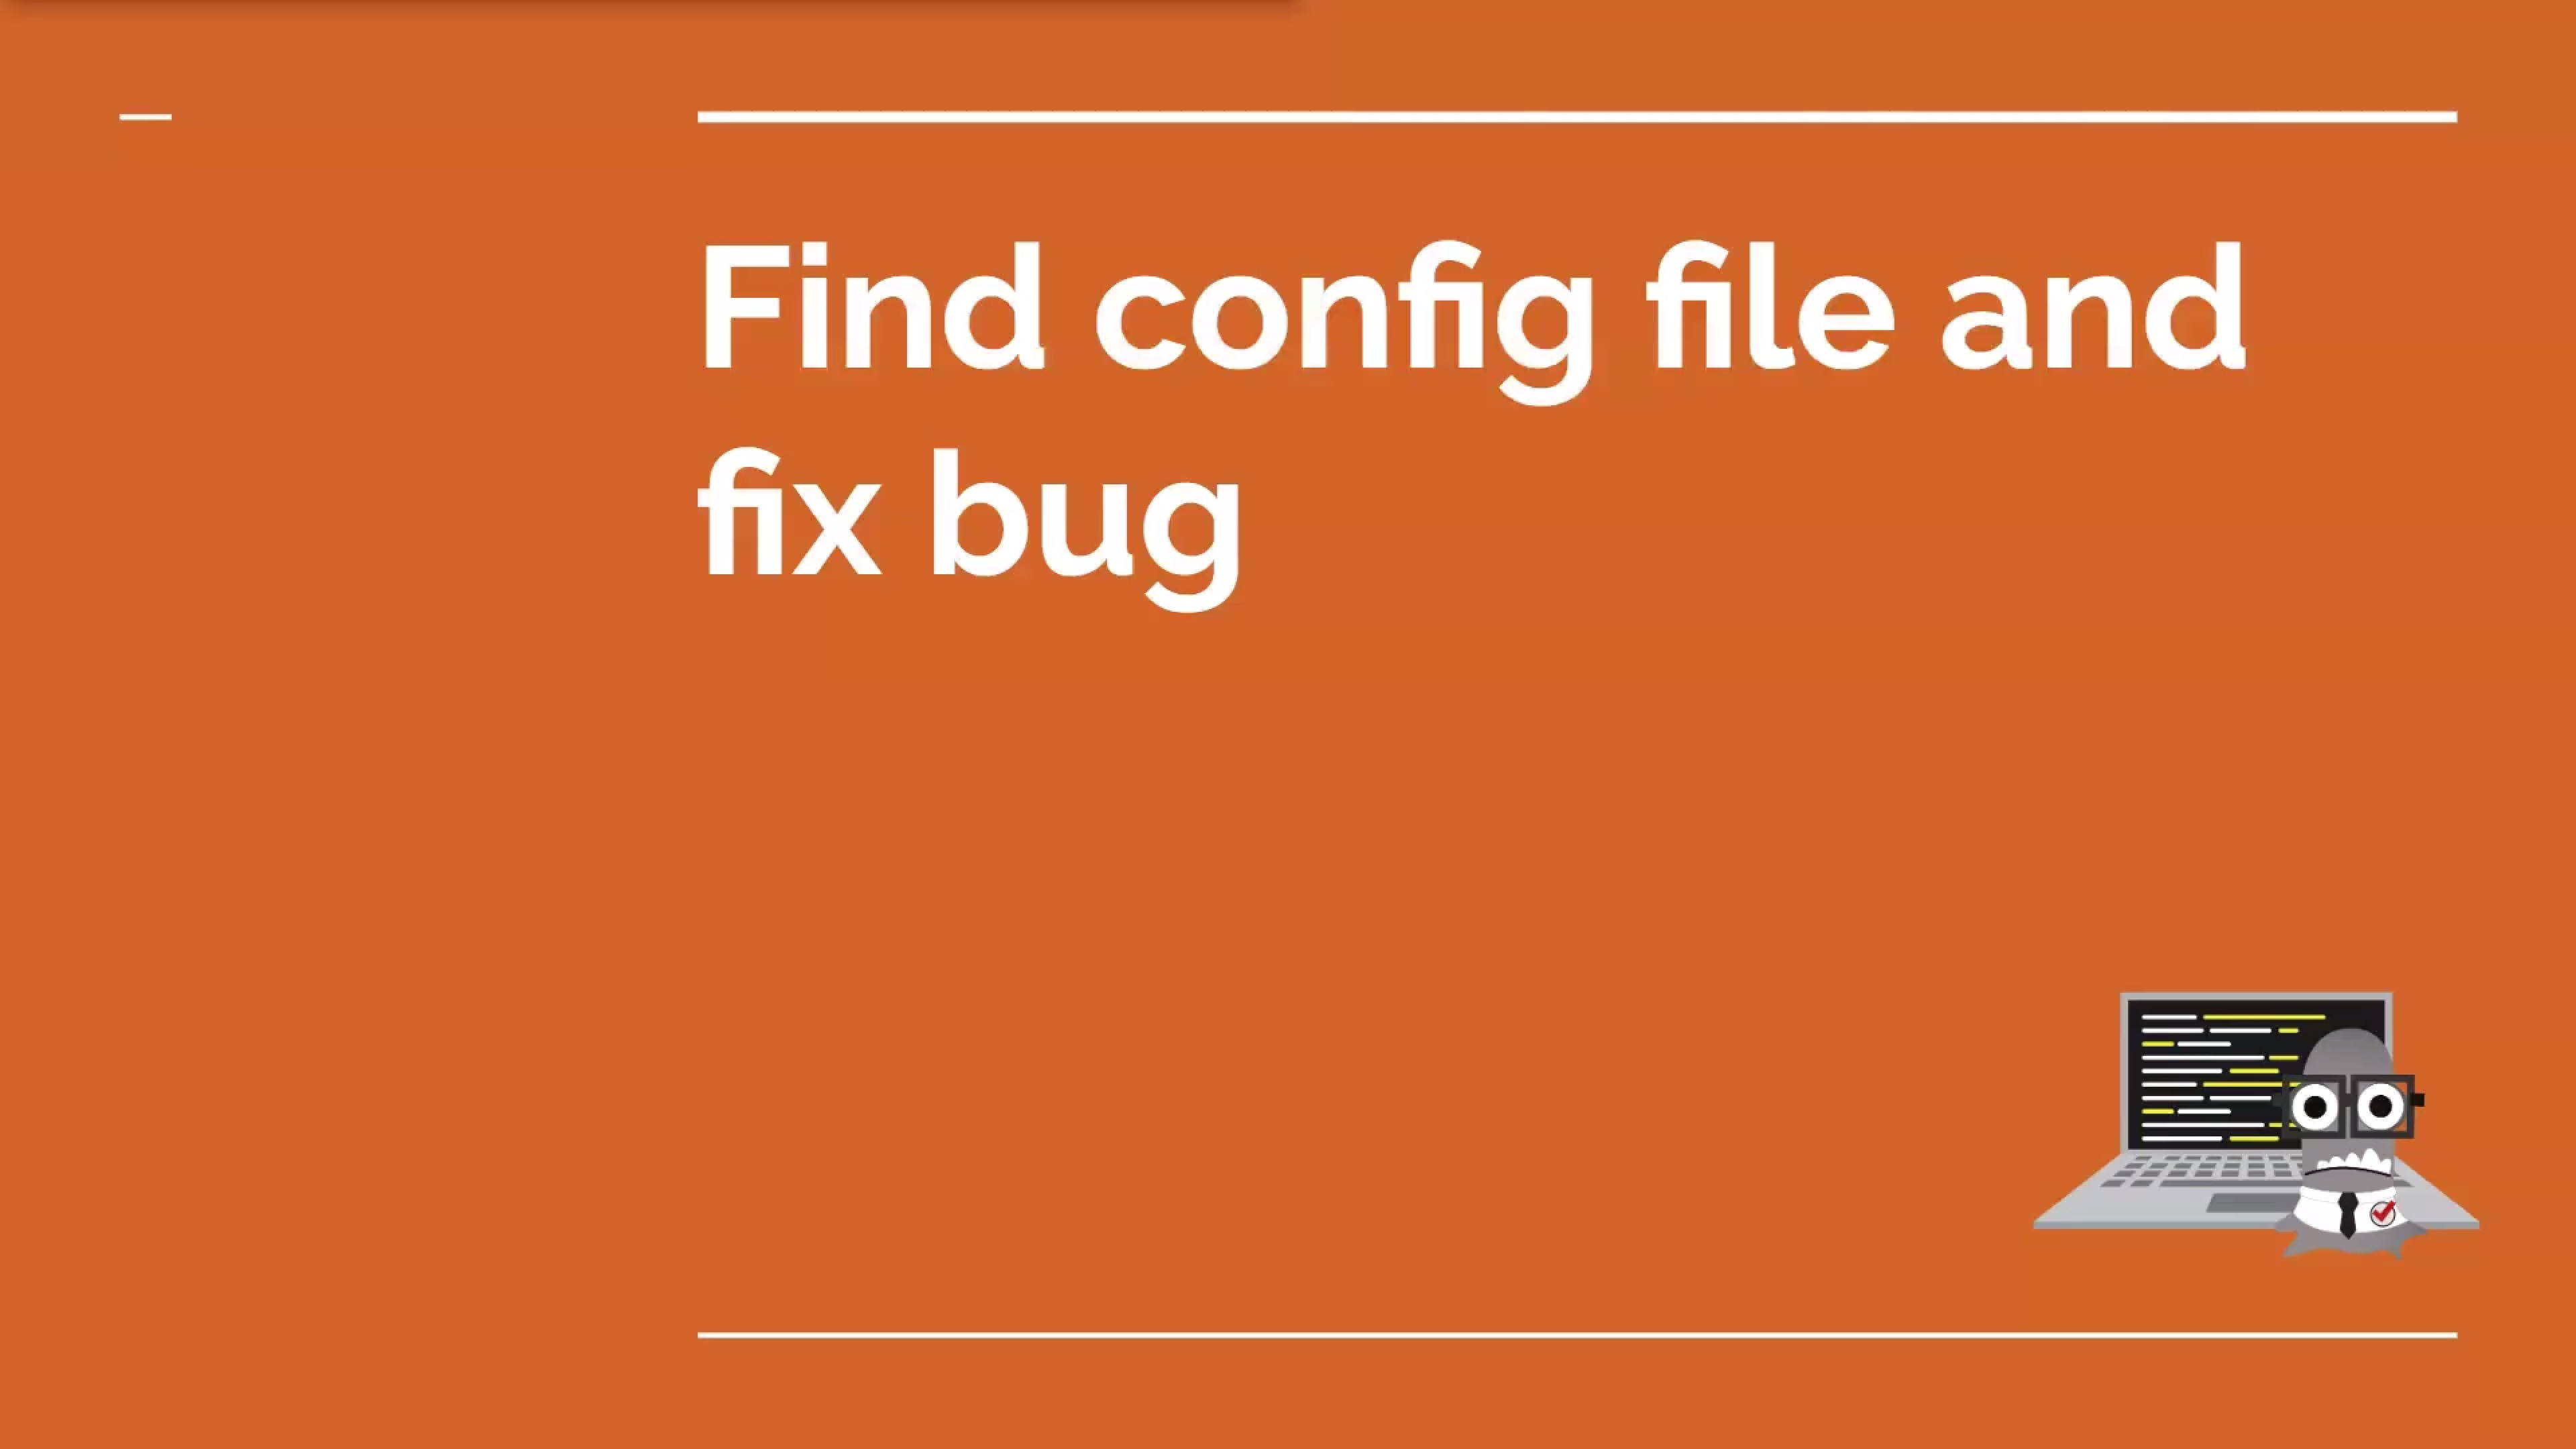 Find Config File and Fix Bug